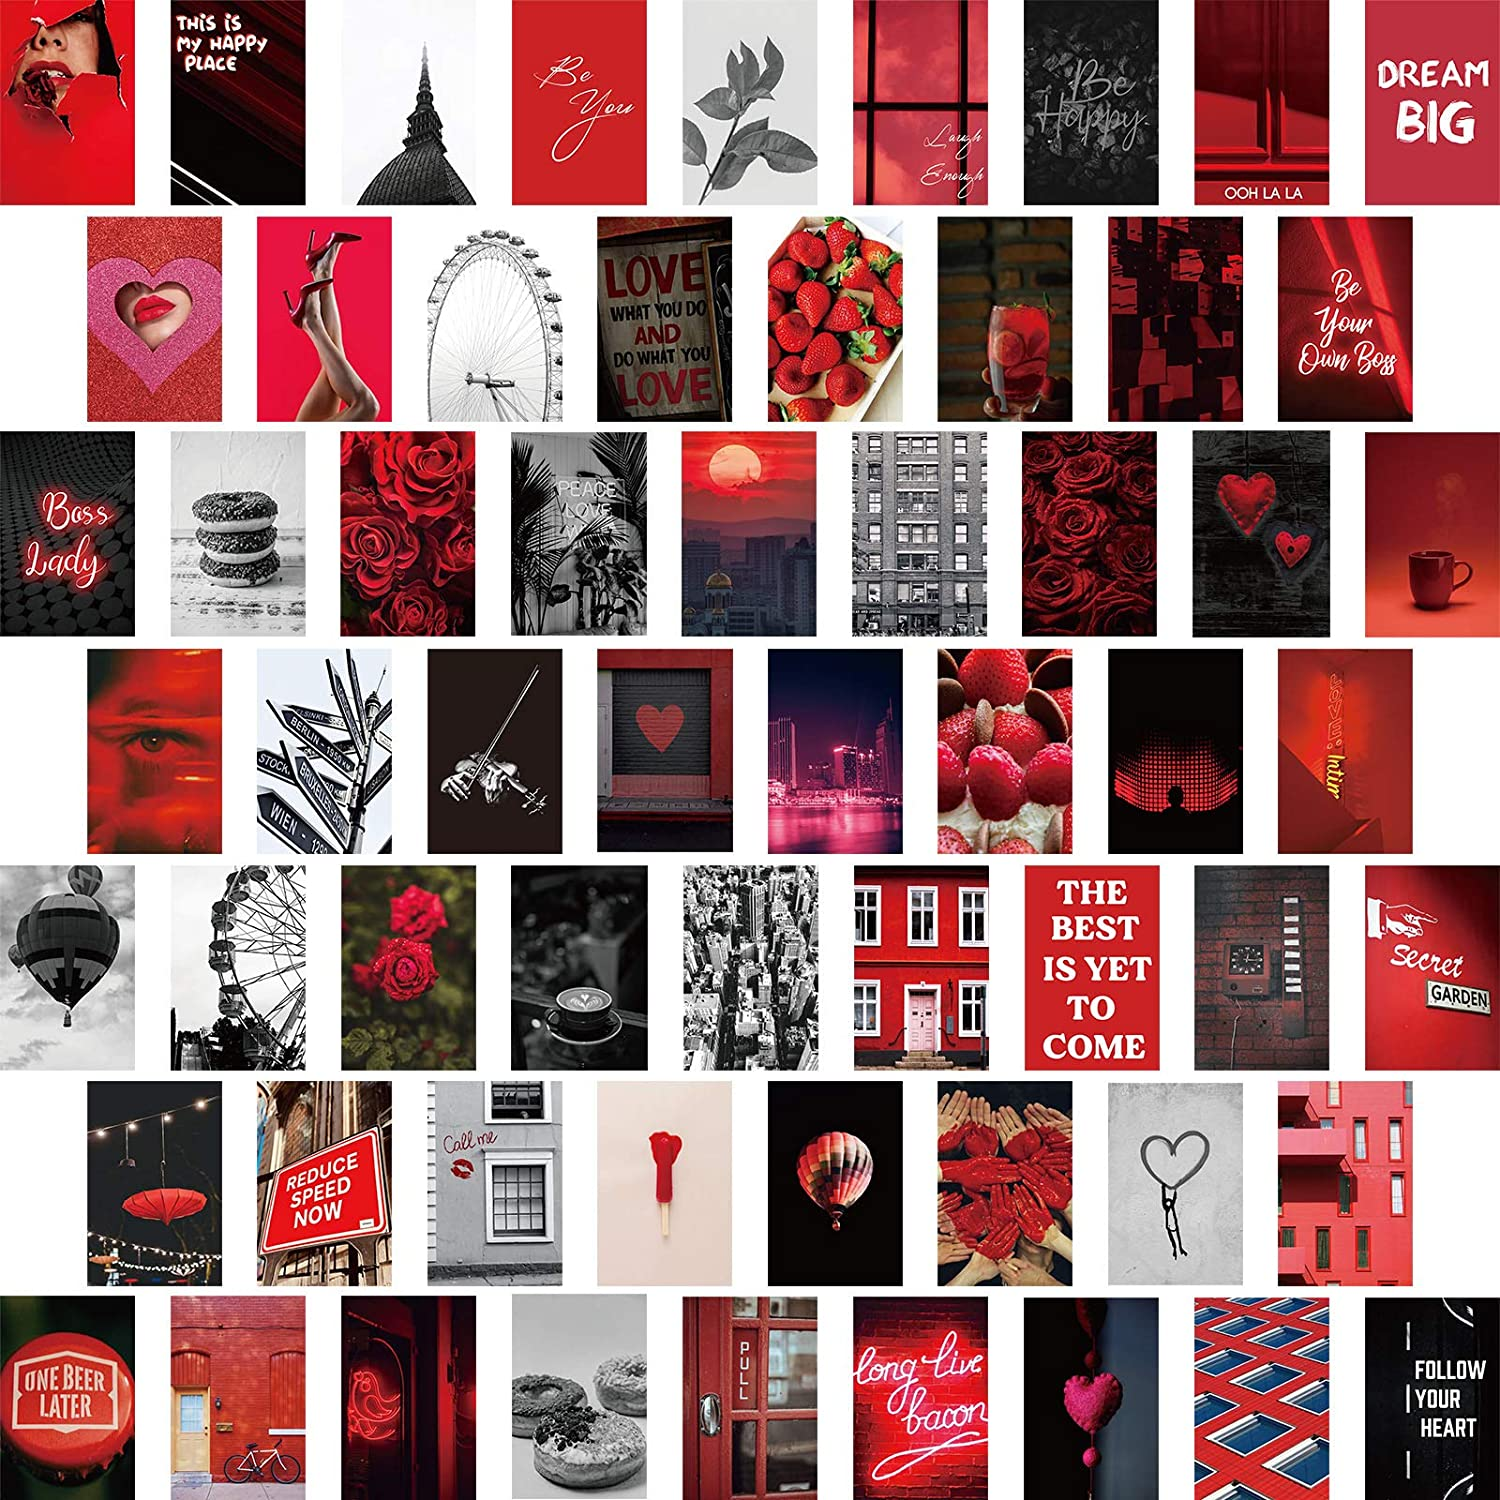 Zonon 60 Pieces Red Aesthetic Posters for Wall Collage Kit Prints Red Aesthetic Pictures for Dorm Photo Display Girls Teens Adults Aesthetic Decor